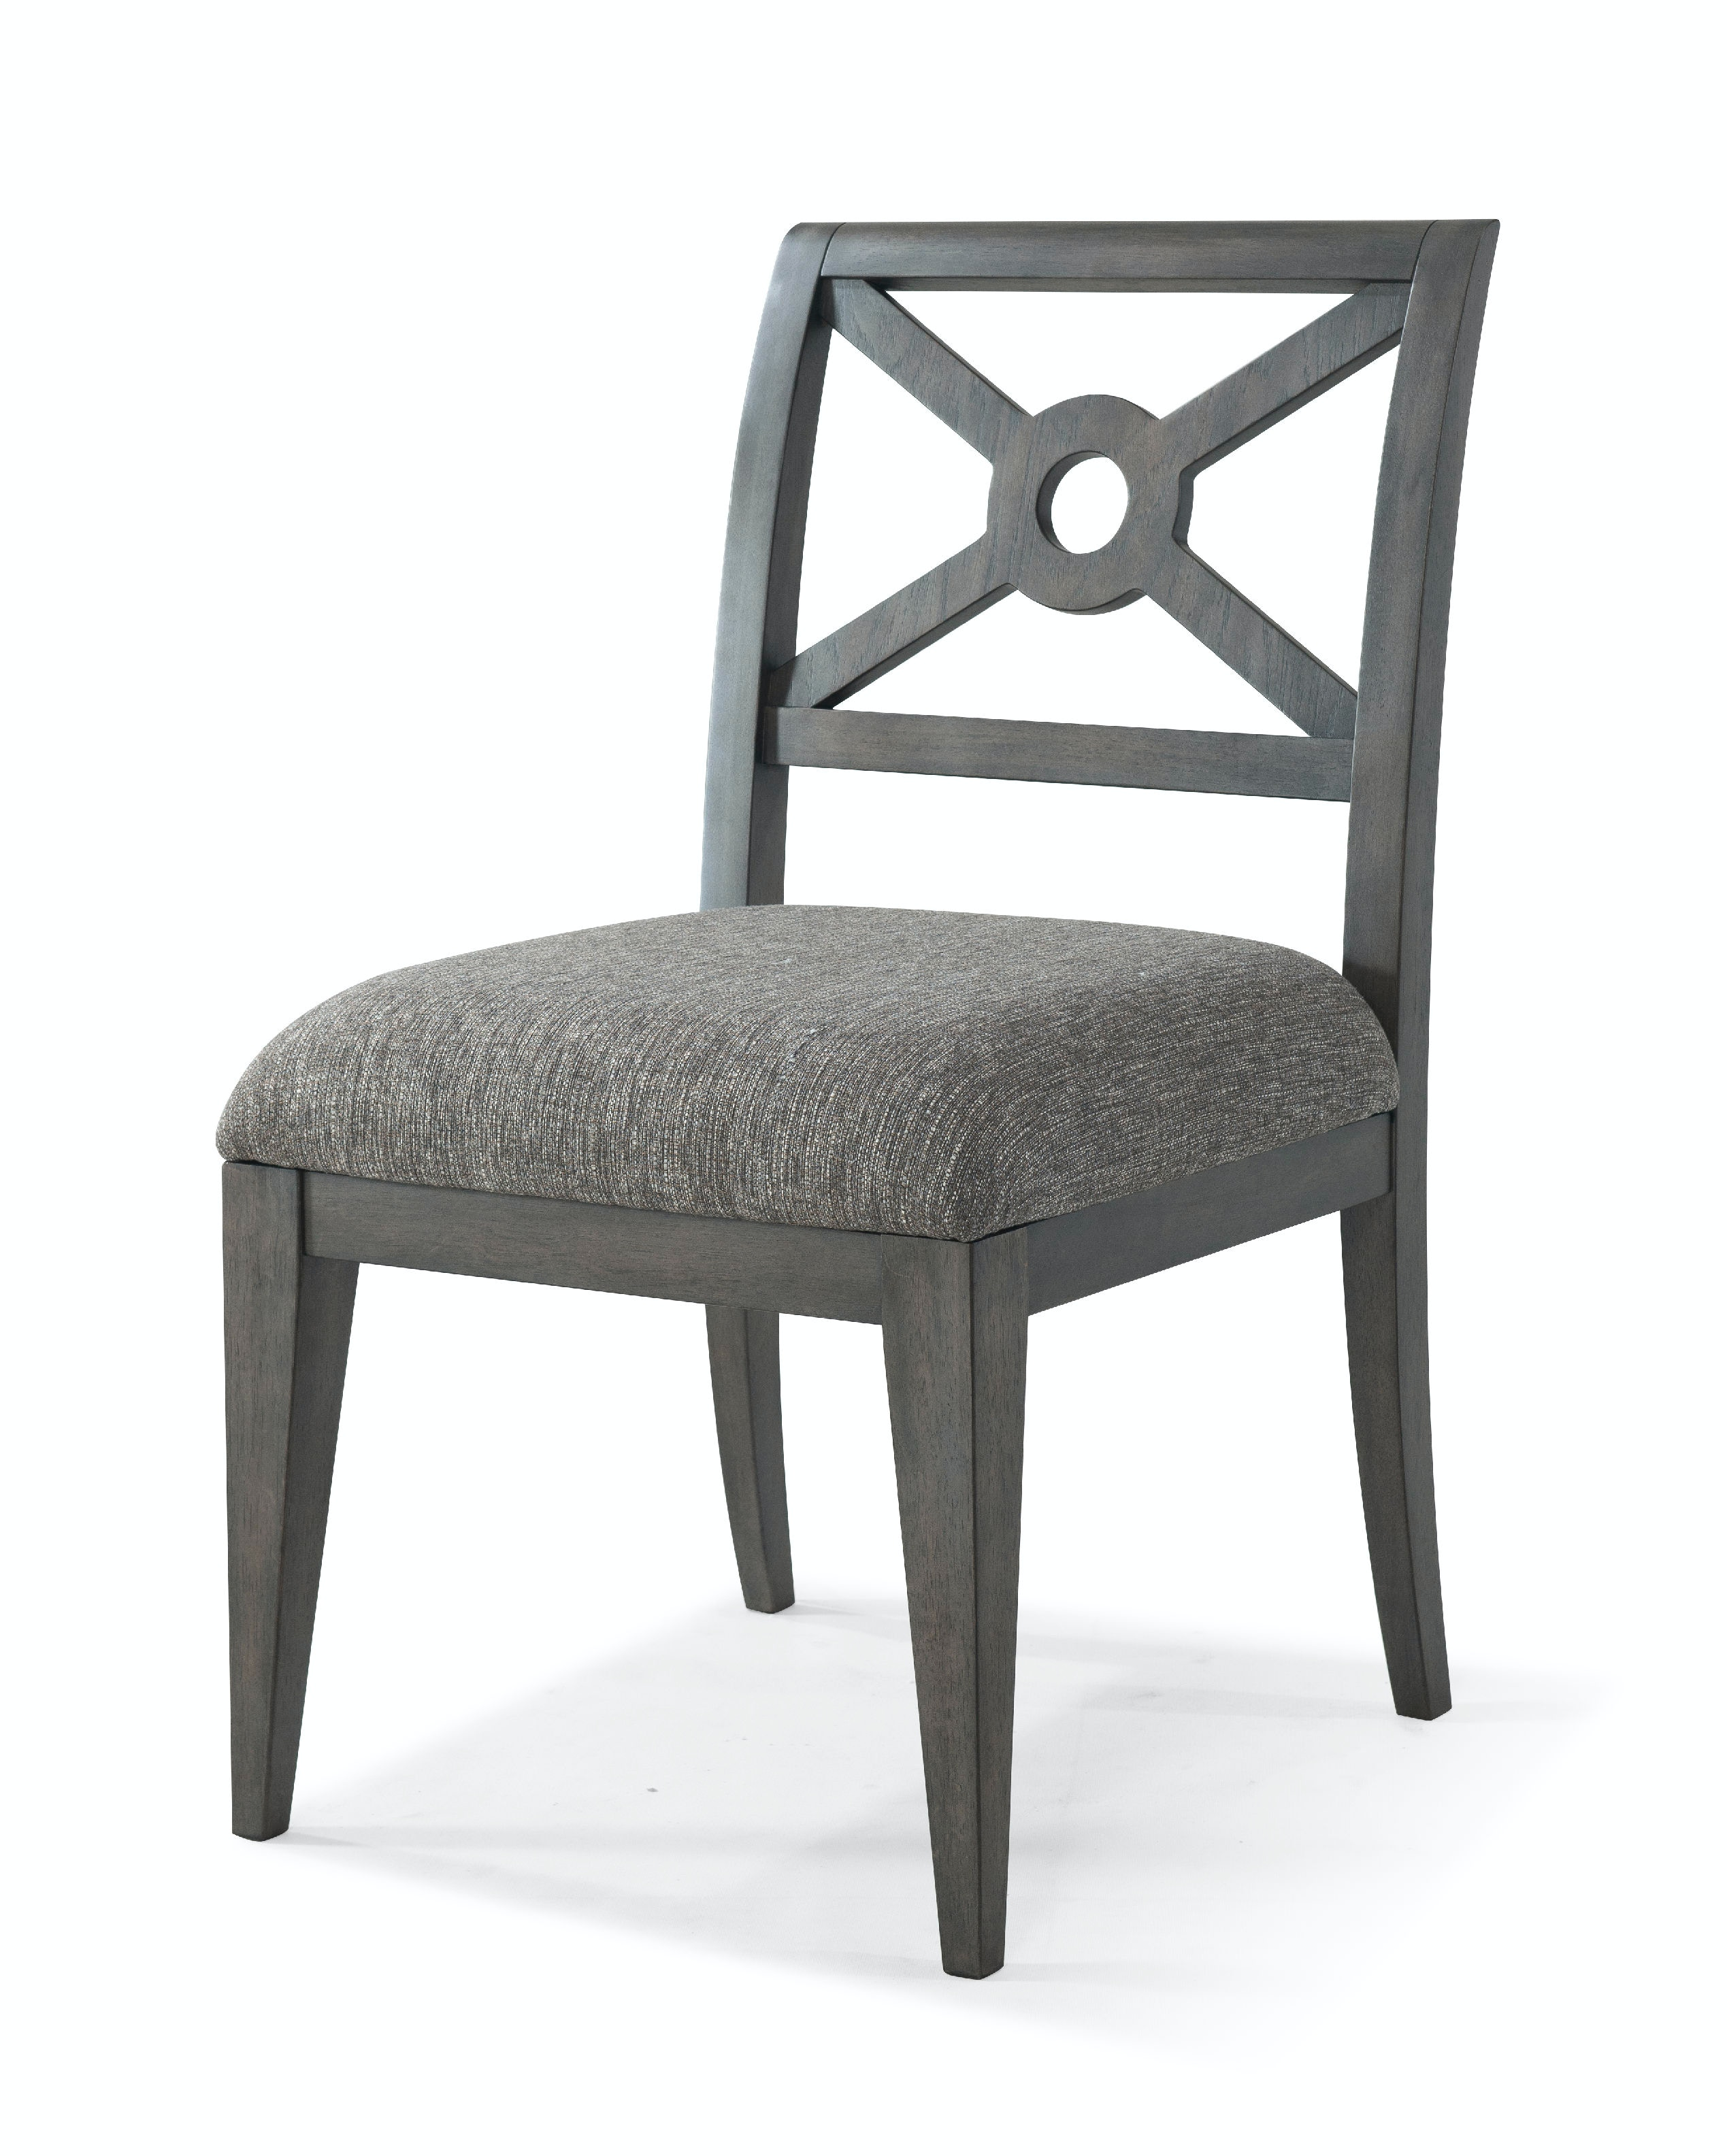 925 900 DRC. Dining Room Chair